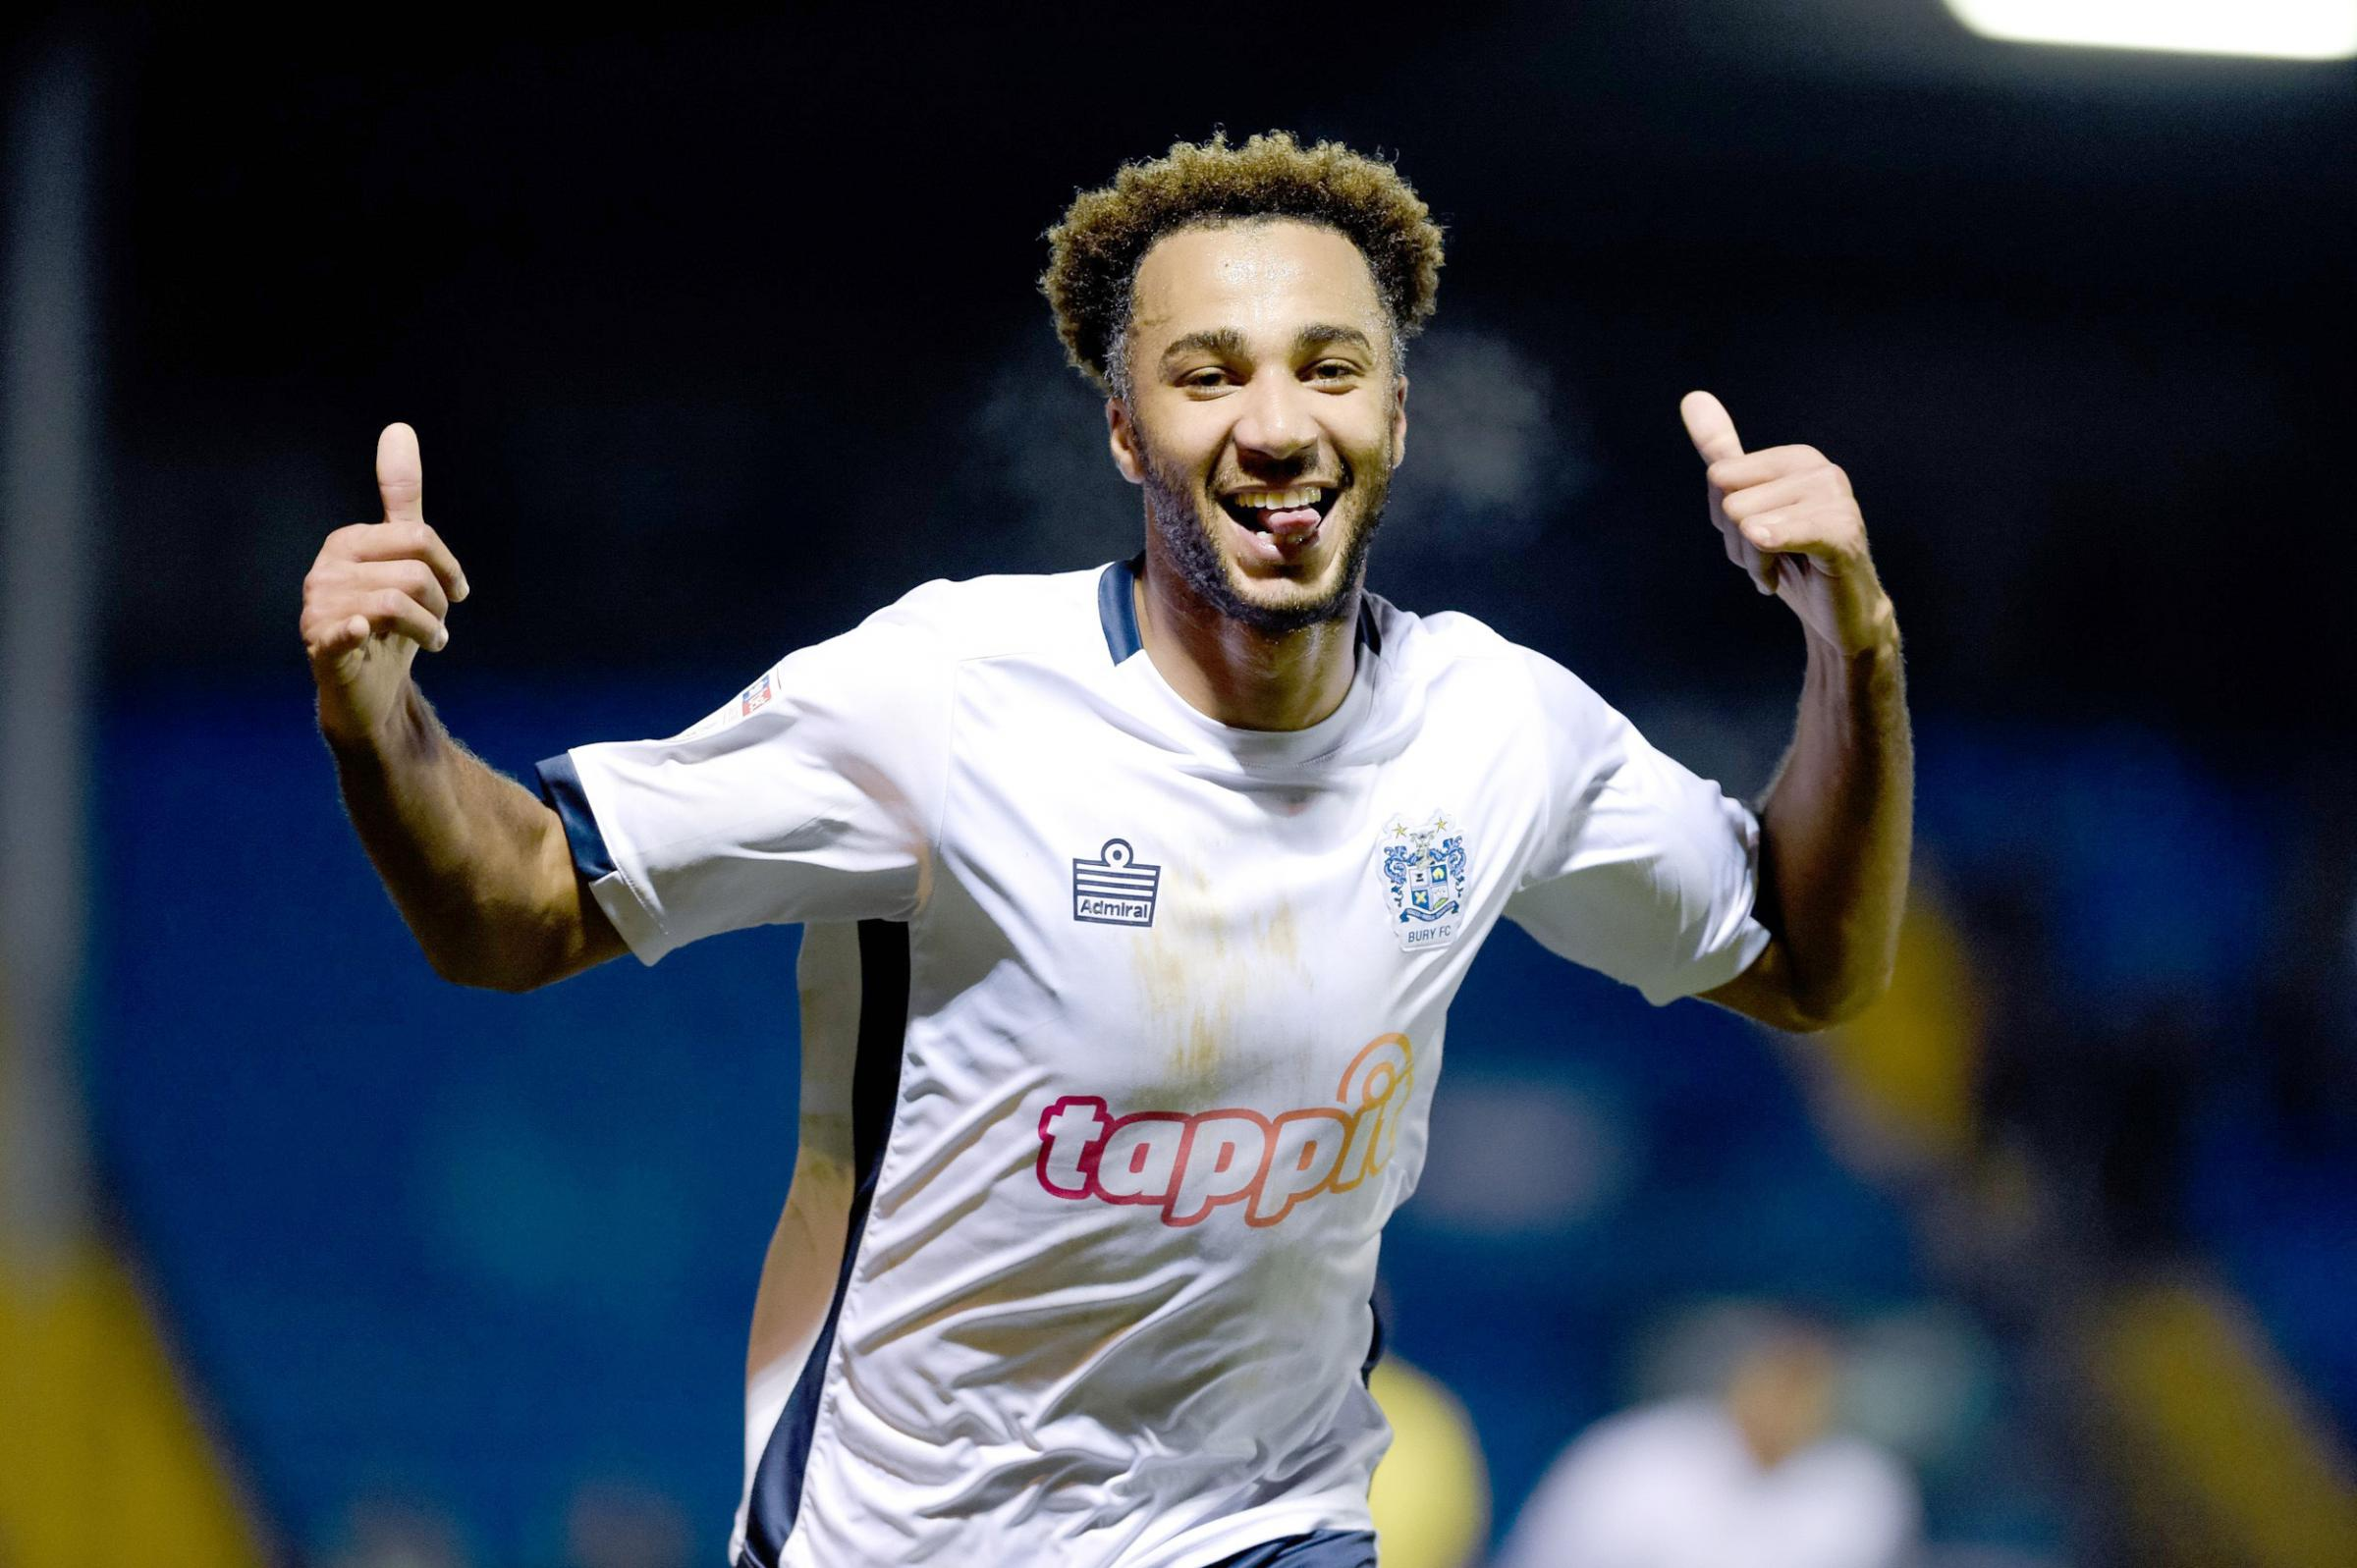 ALL SMILES: Nicky Maynard shows his delight after scoring one of his two goals in Tuesday night's 4-1 home victory over Cheltenham Town